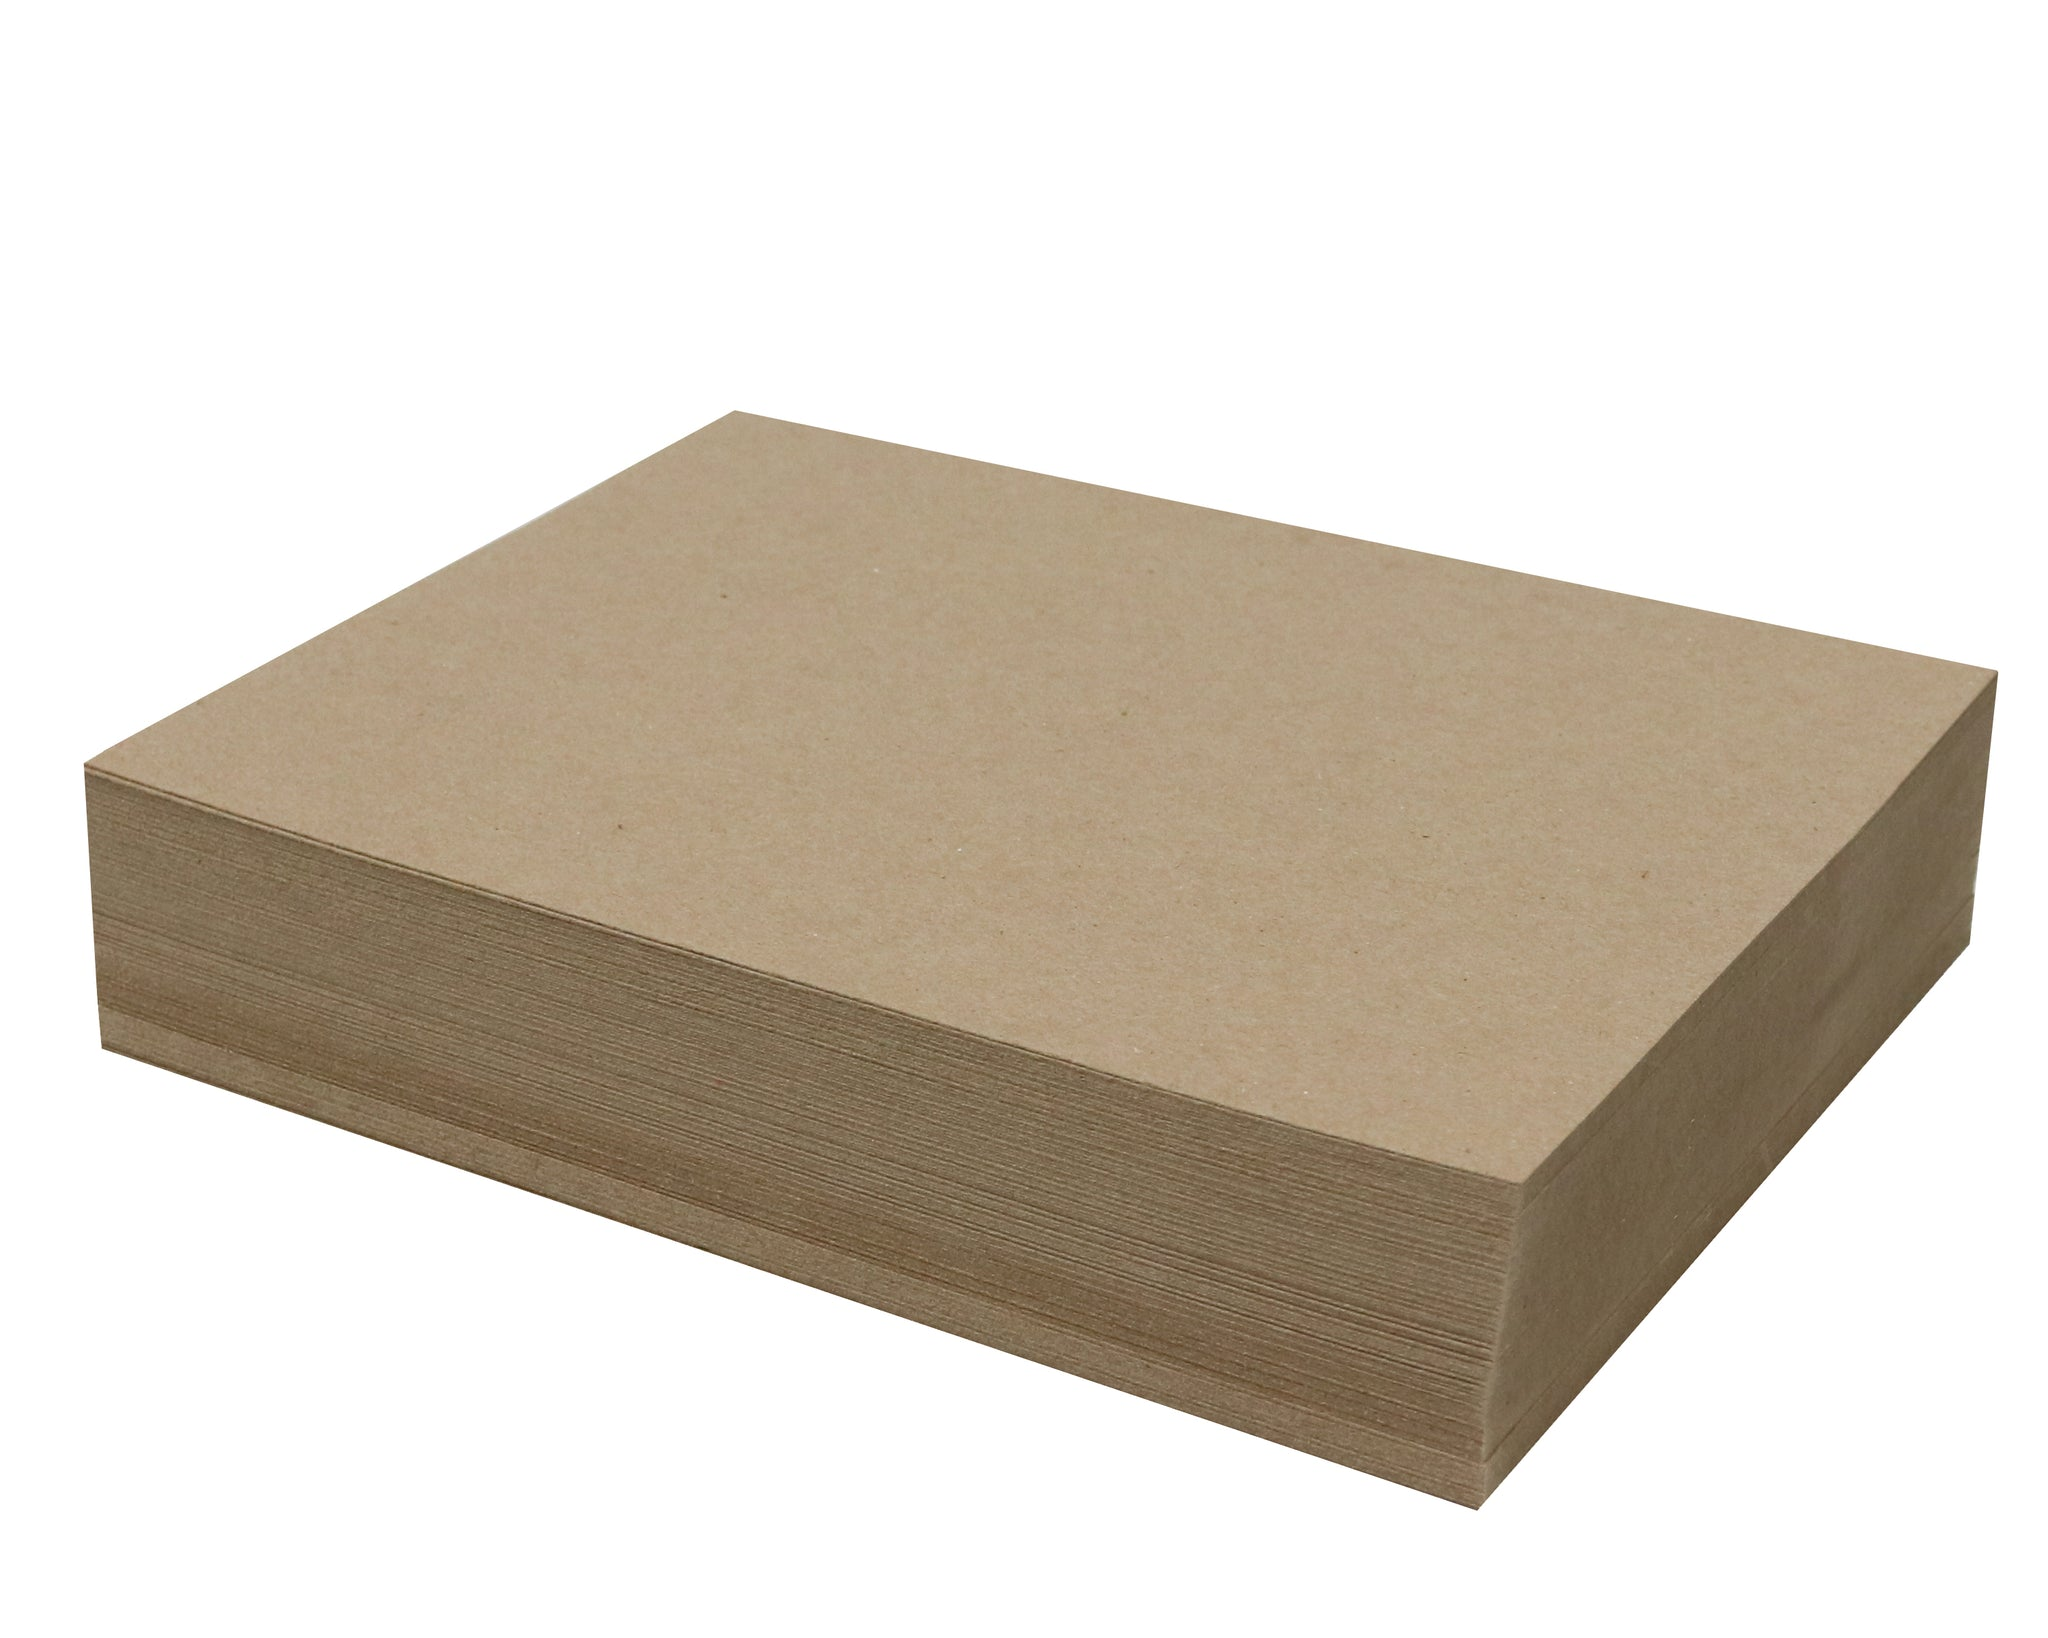 15MM CHIPBOARD SHEETS LARGE SHEETS 2800 X 2070MM PICK UP